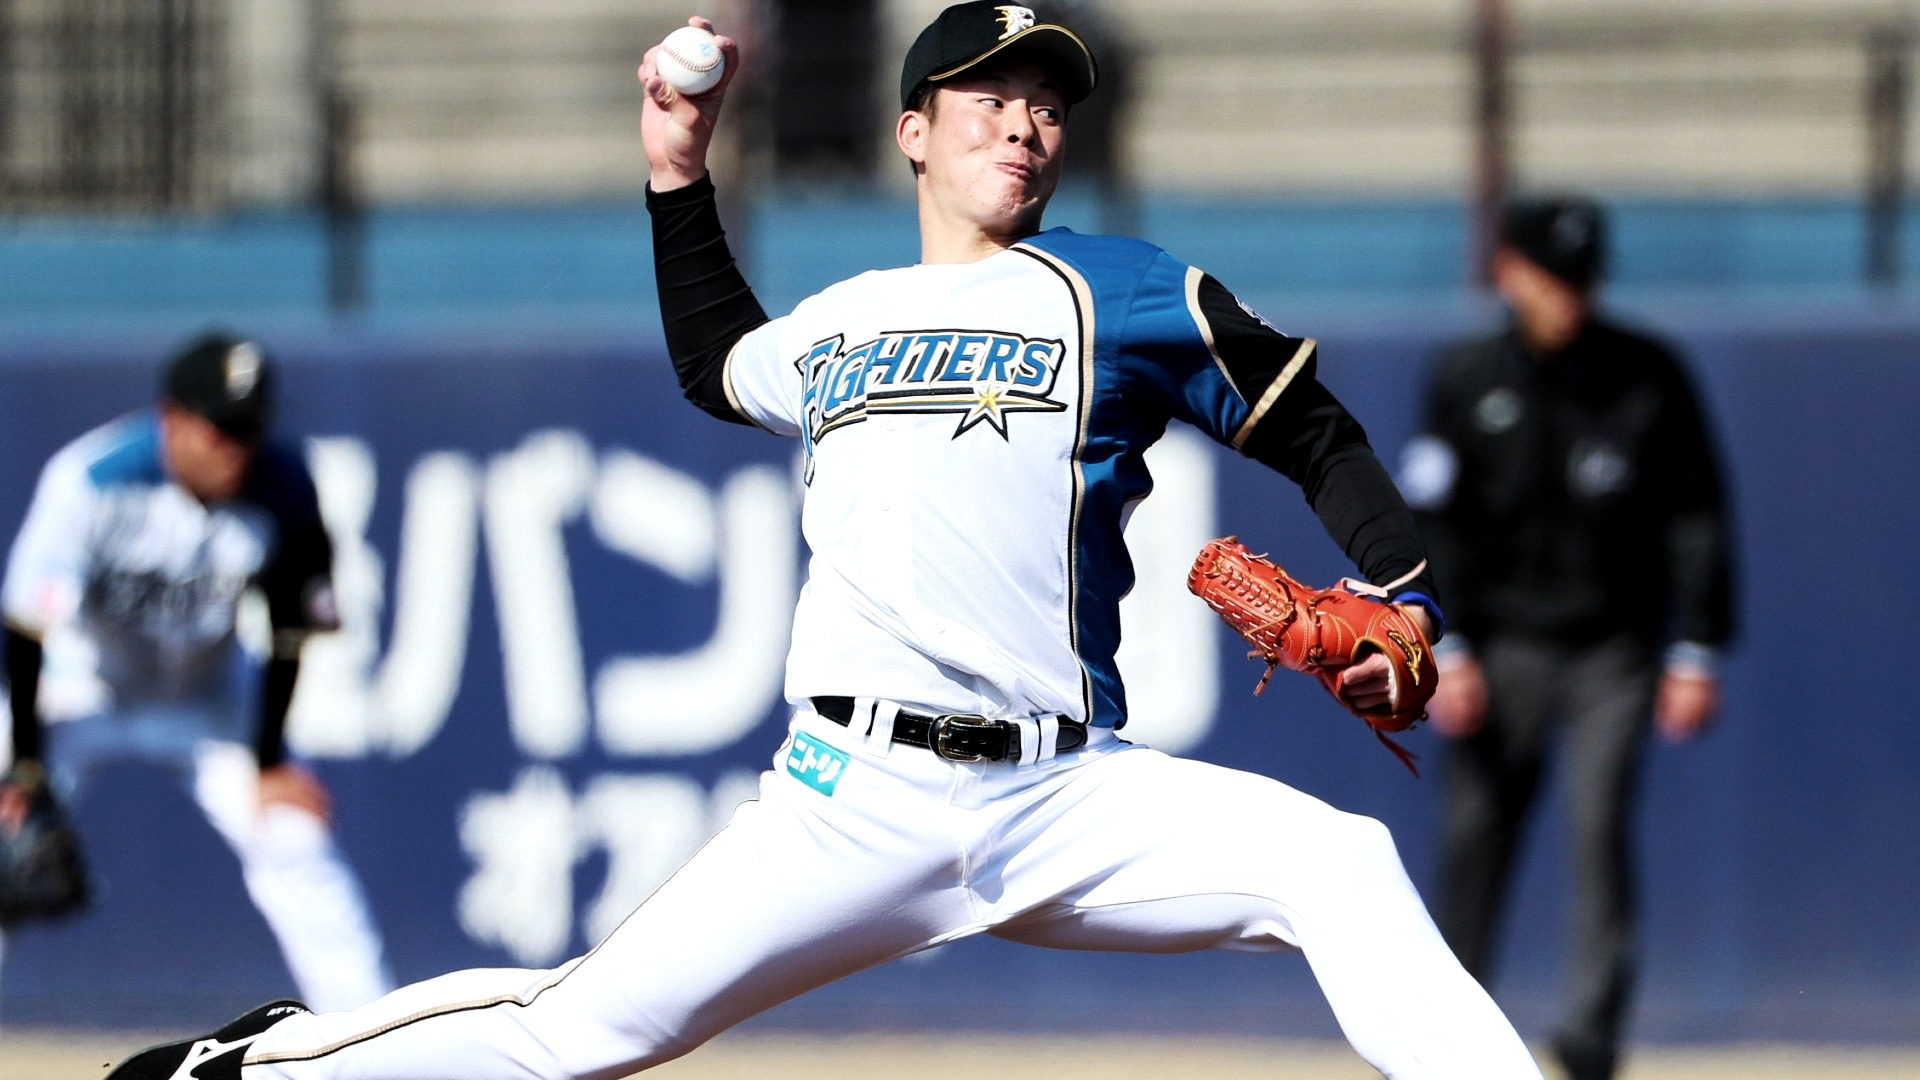 2021-02-28-npb-fighters-YOSHIDA